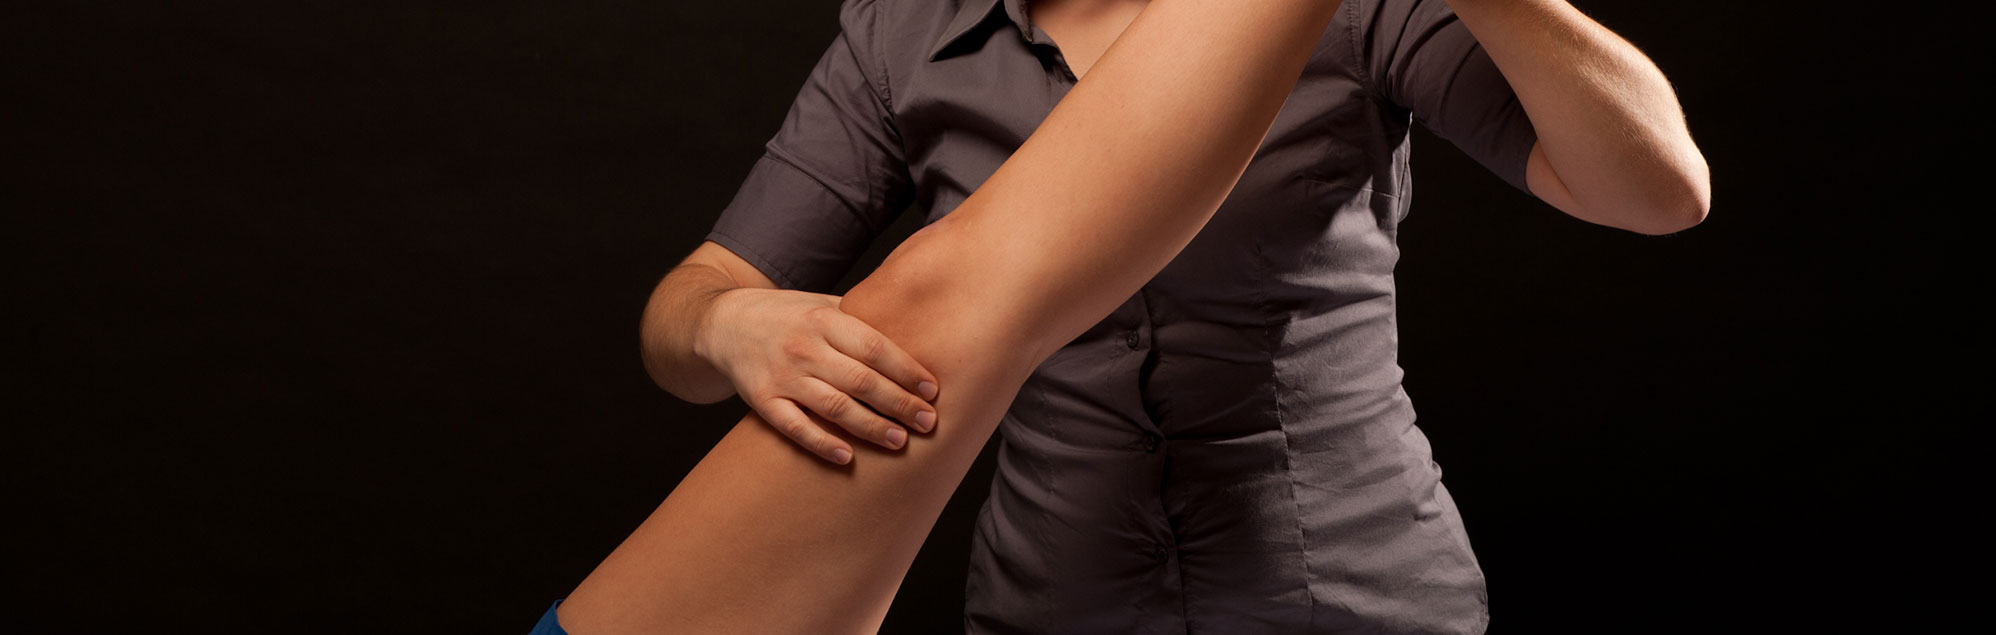 Centre-TMO-physiotherapie-osteopathie-massotherapie-Gatineau-Hull-MGP_4888